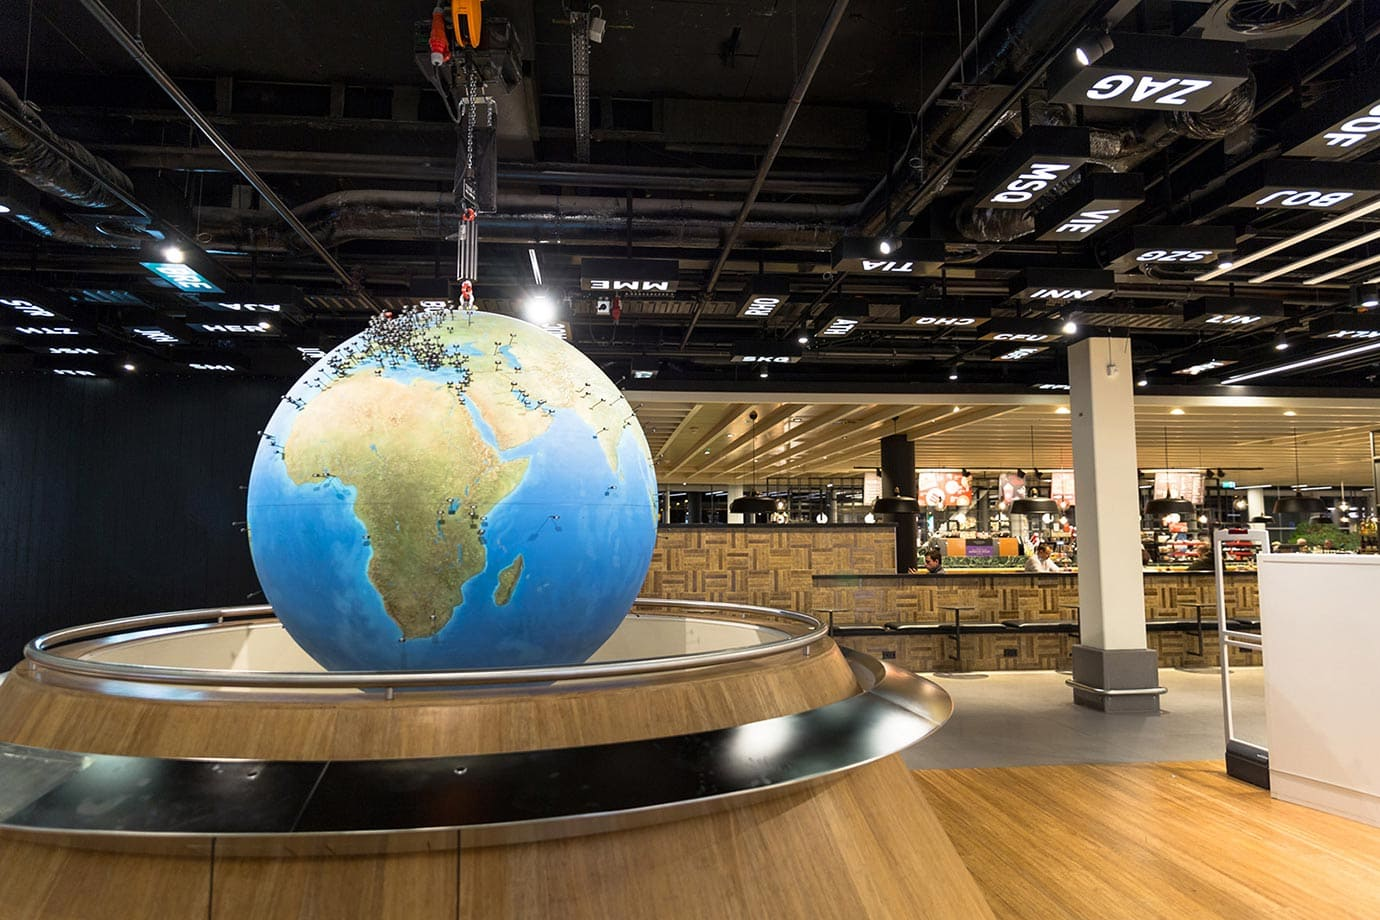 Globe at Schiphol Airport